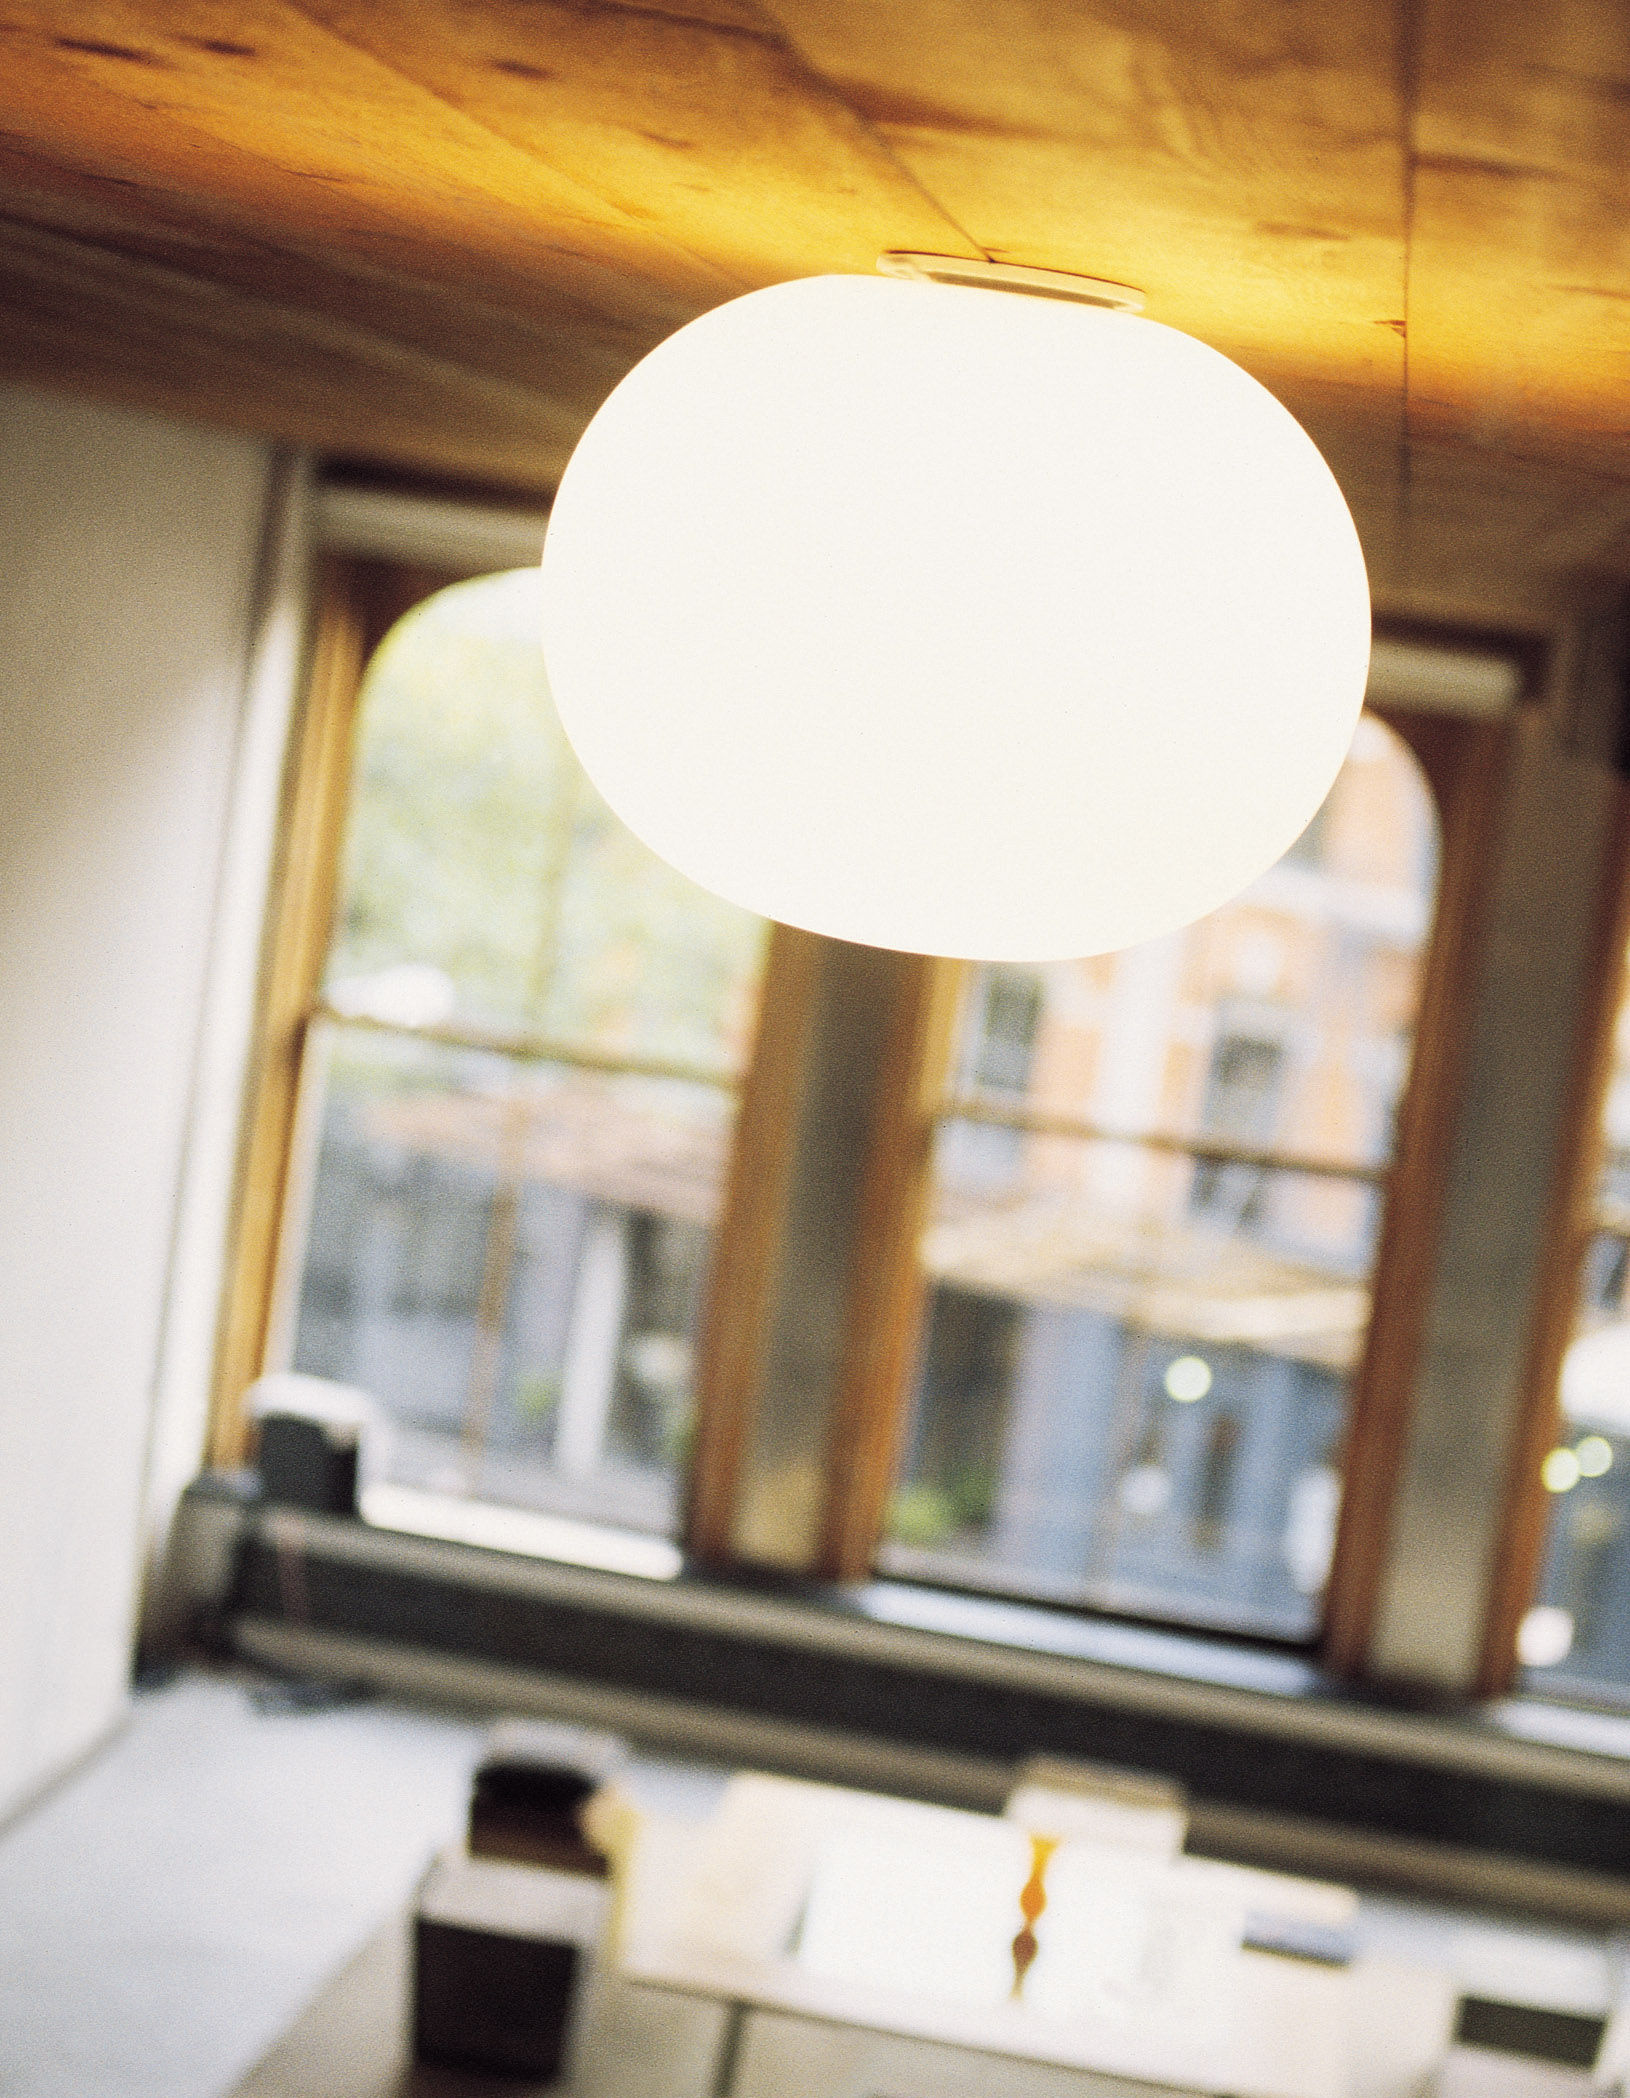 Mini Glo-Ball Wall light - Ceiling light White by Flos | Made In ...